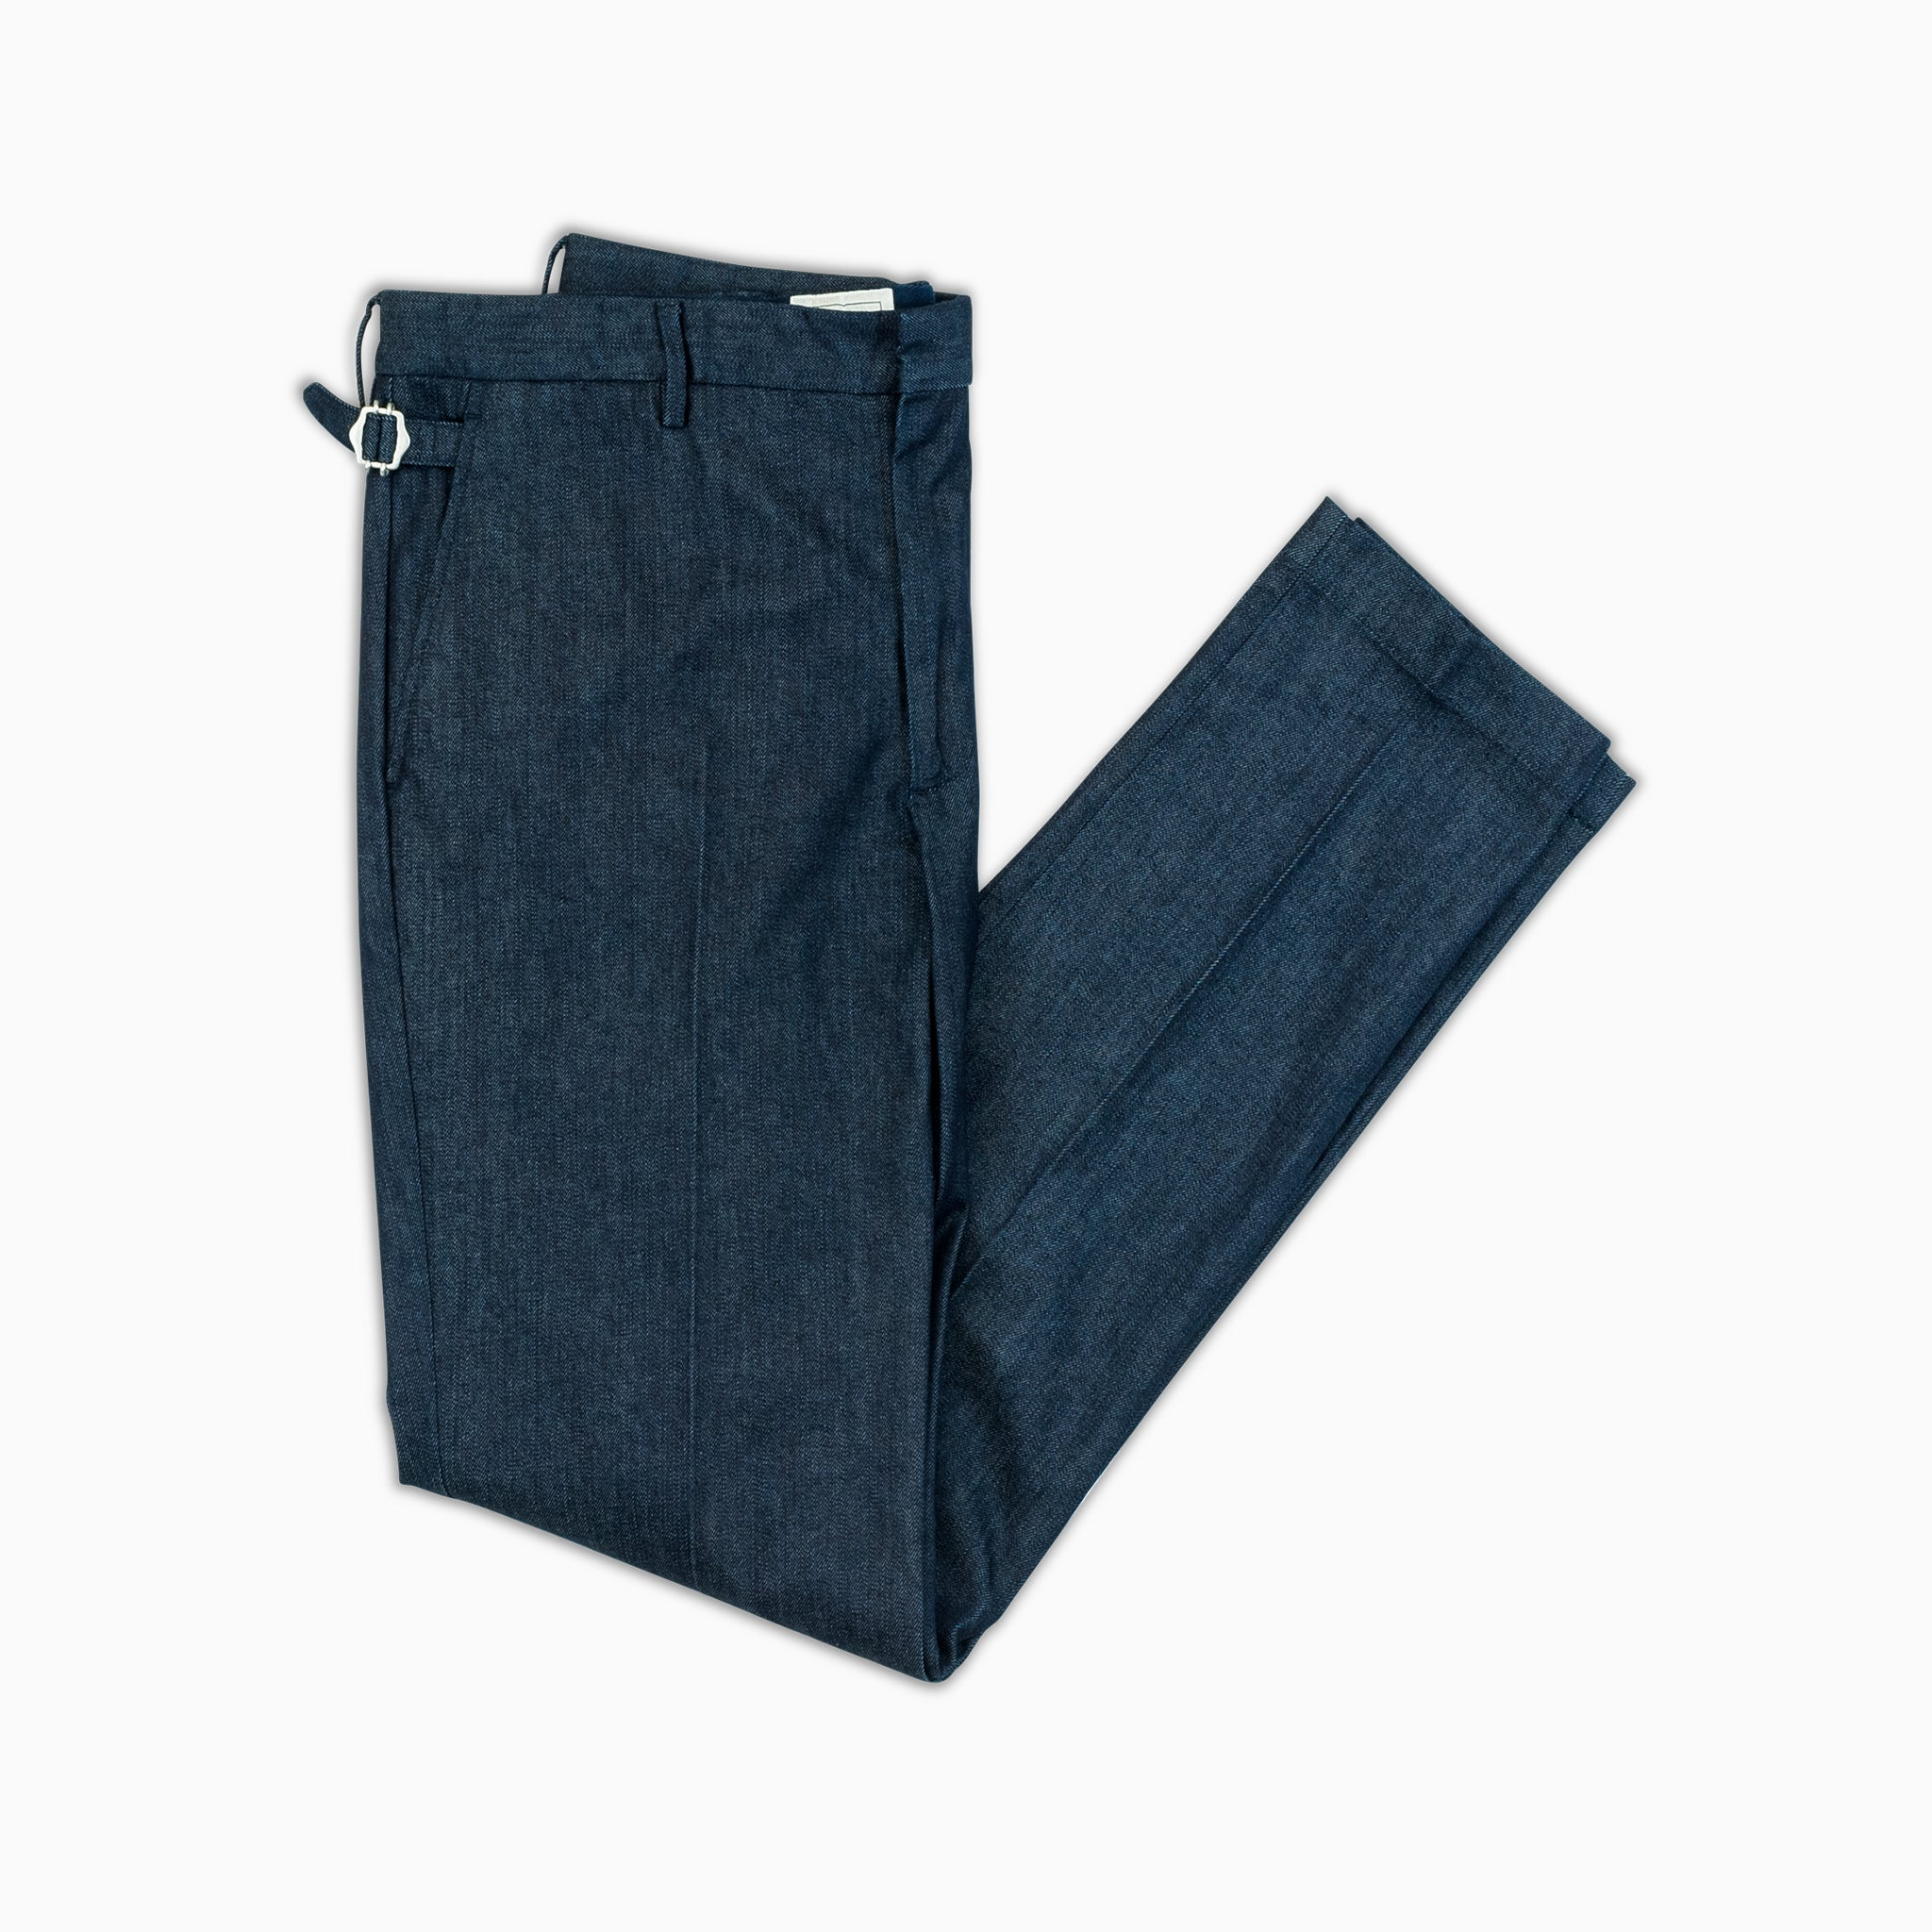 Arduin new denim chino concept in fine stretch denim (dark blue)